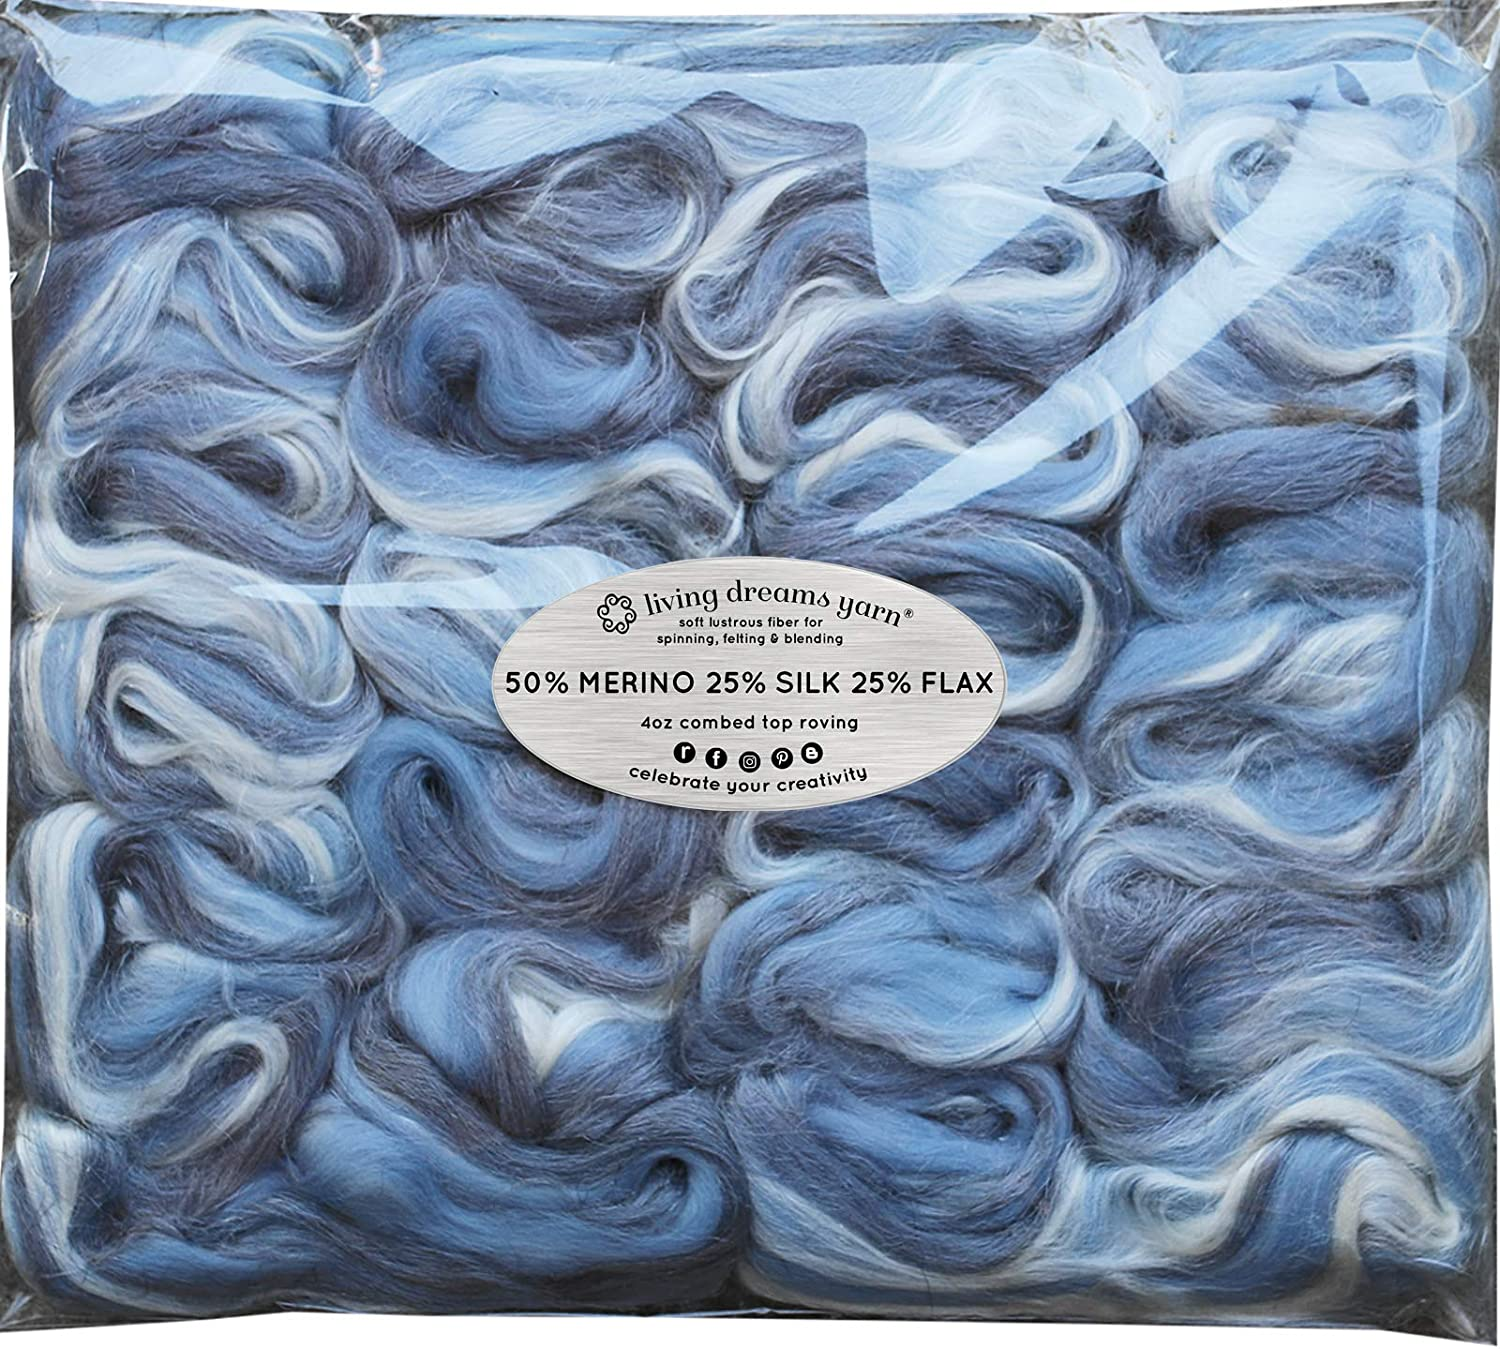 Eco-Friendly MERINO SILK FLAX for Spinning /& Felting Soft Breathable Fiber Blend Made in USA Papaya Cruelty Free /& Sustainably Harvested